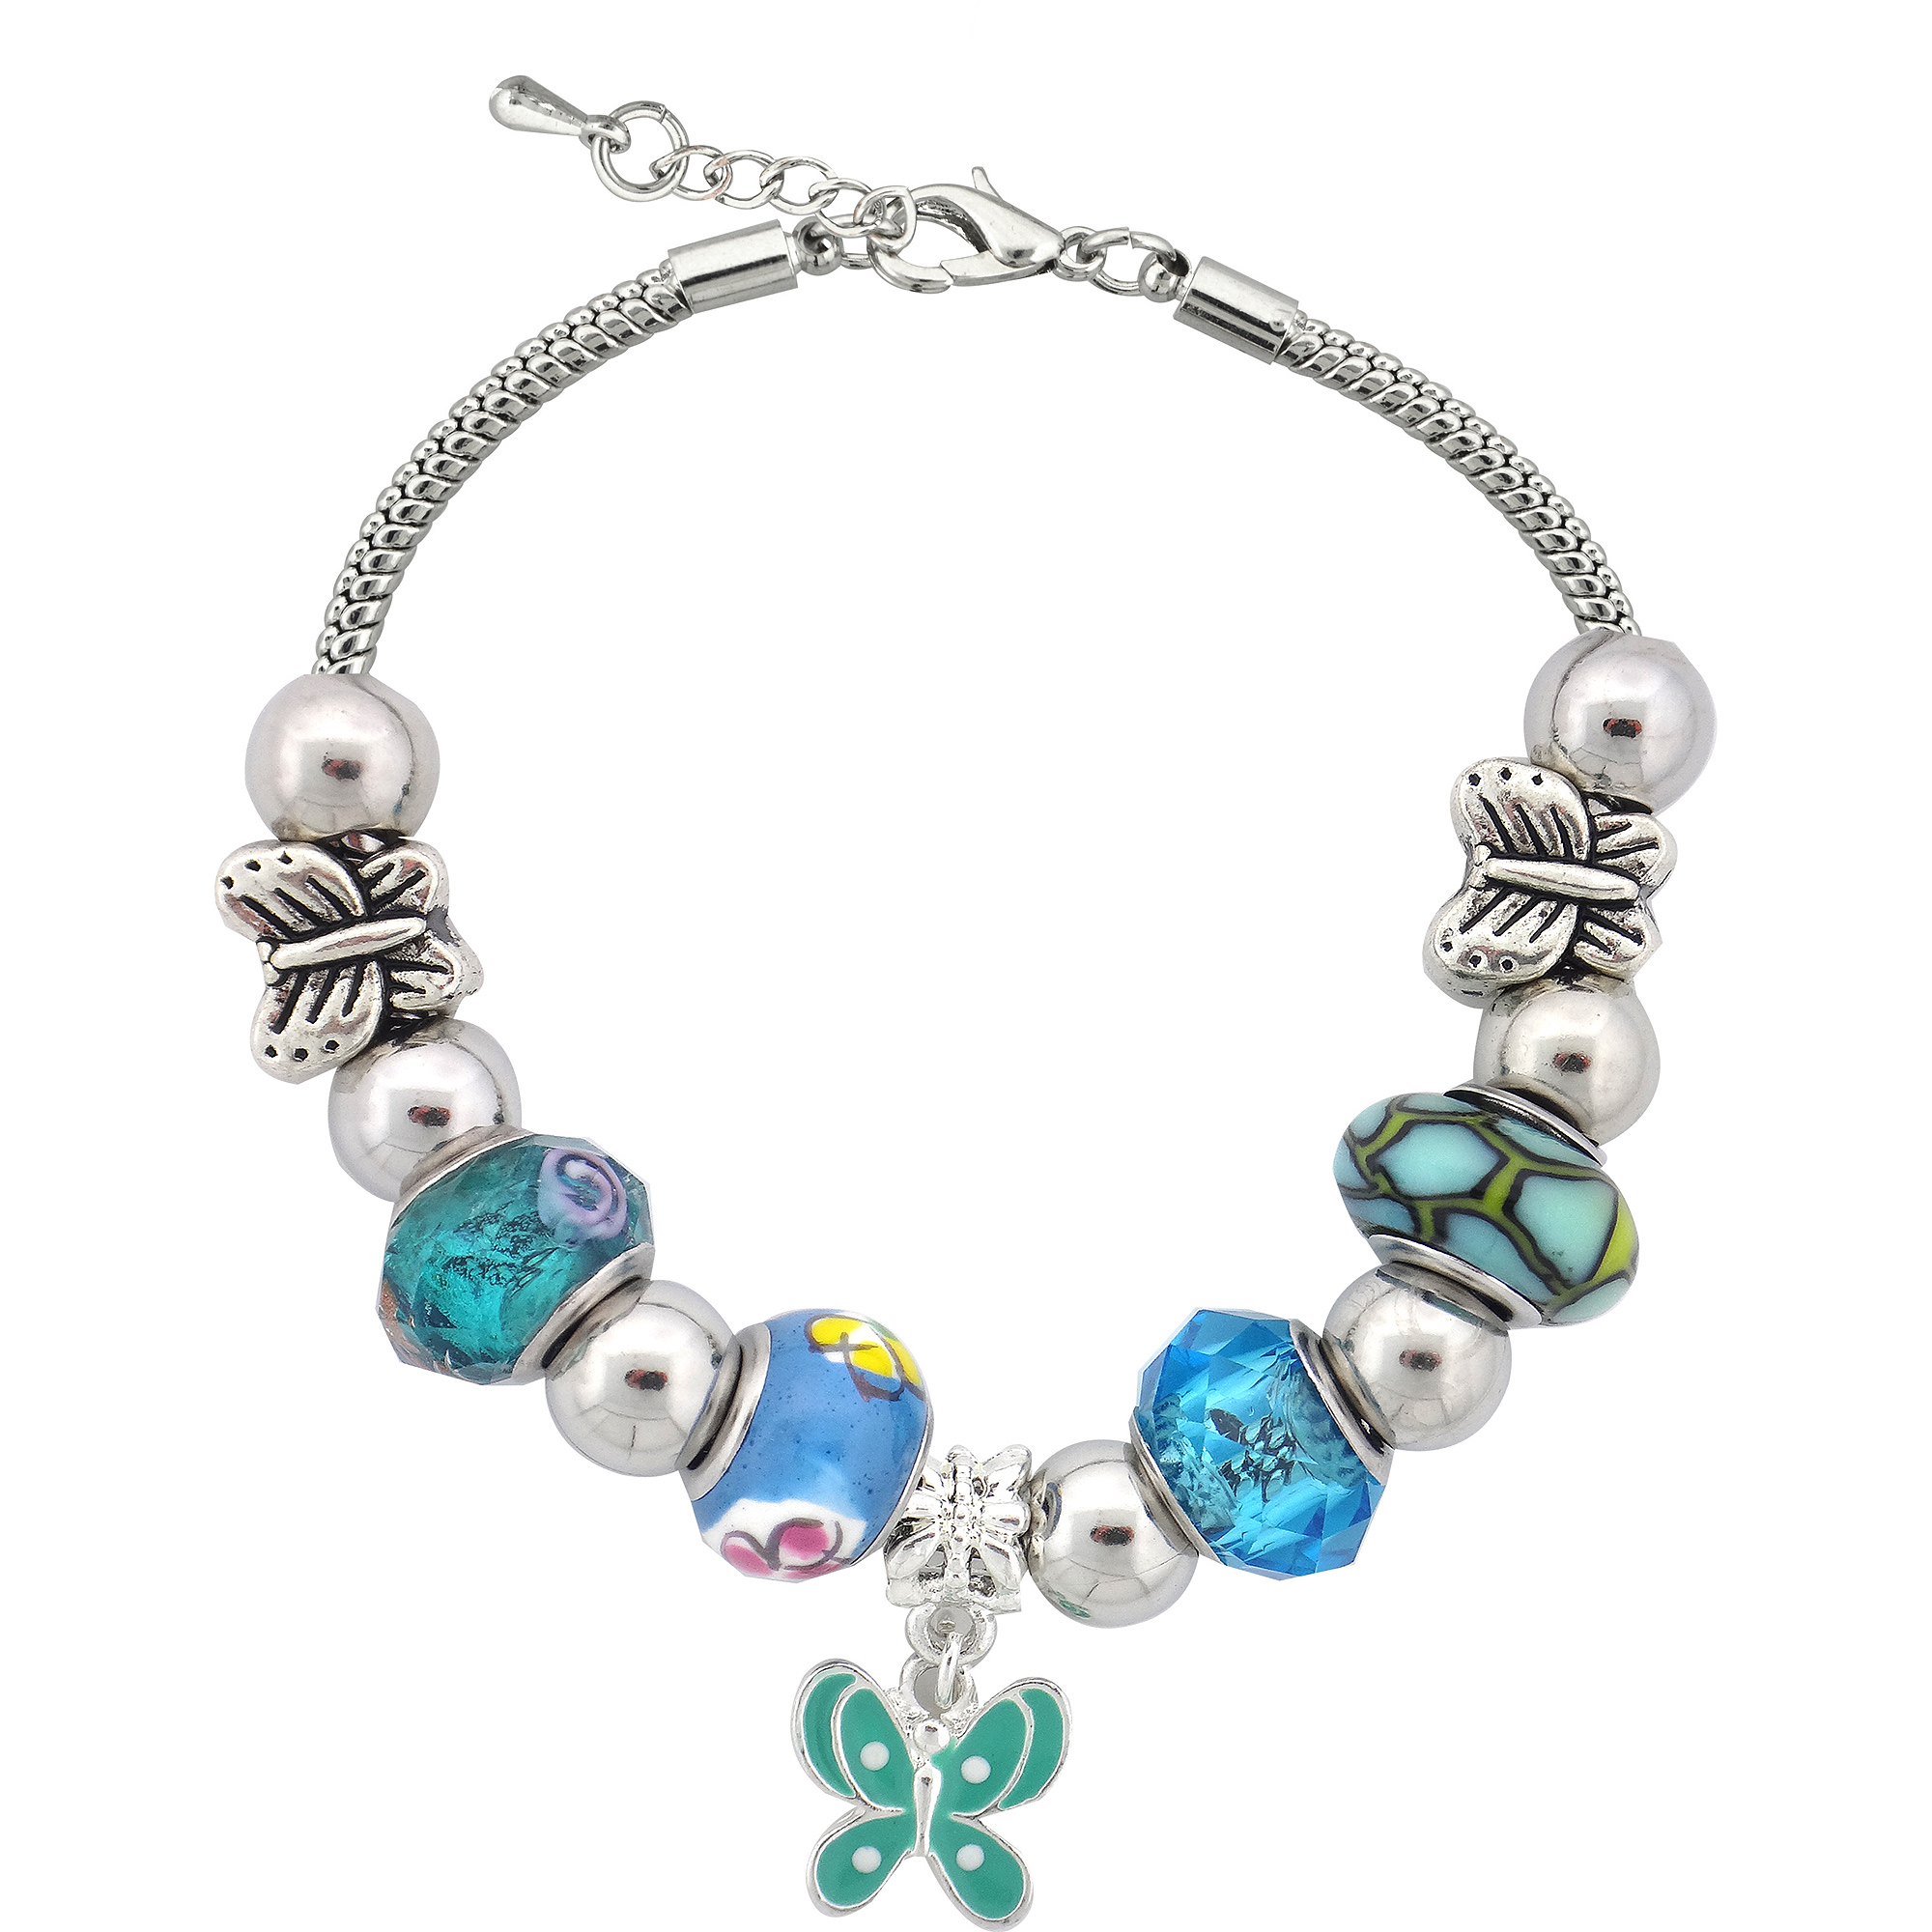 Silvertone Butterfly Charm and Glass Beads Bracelet with Extender, 7.5